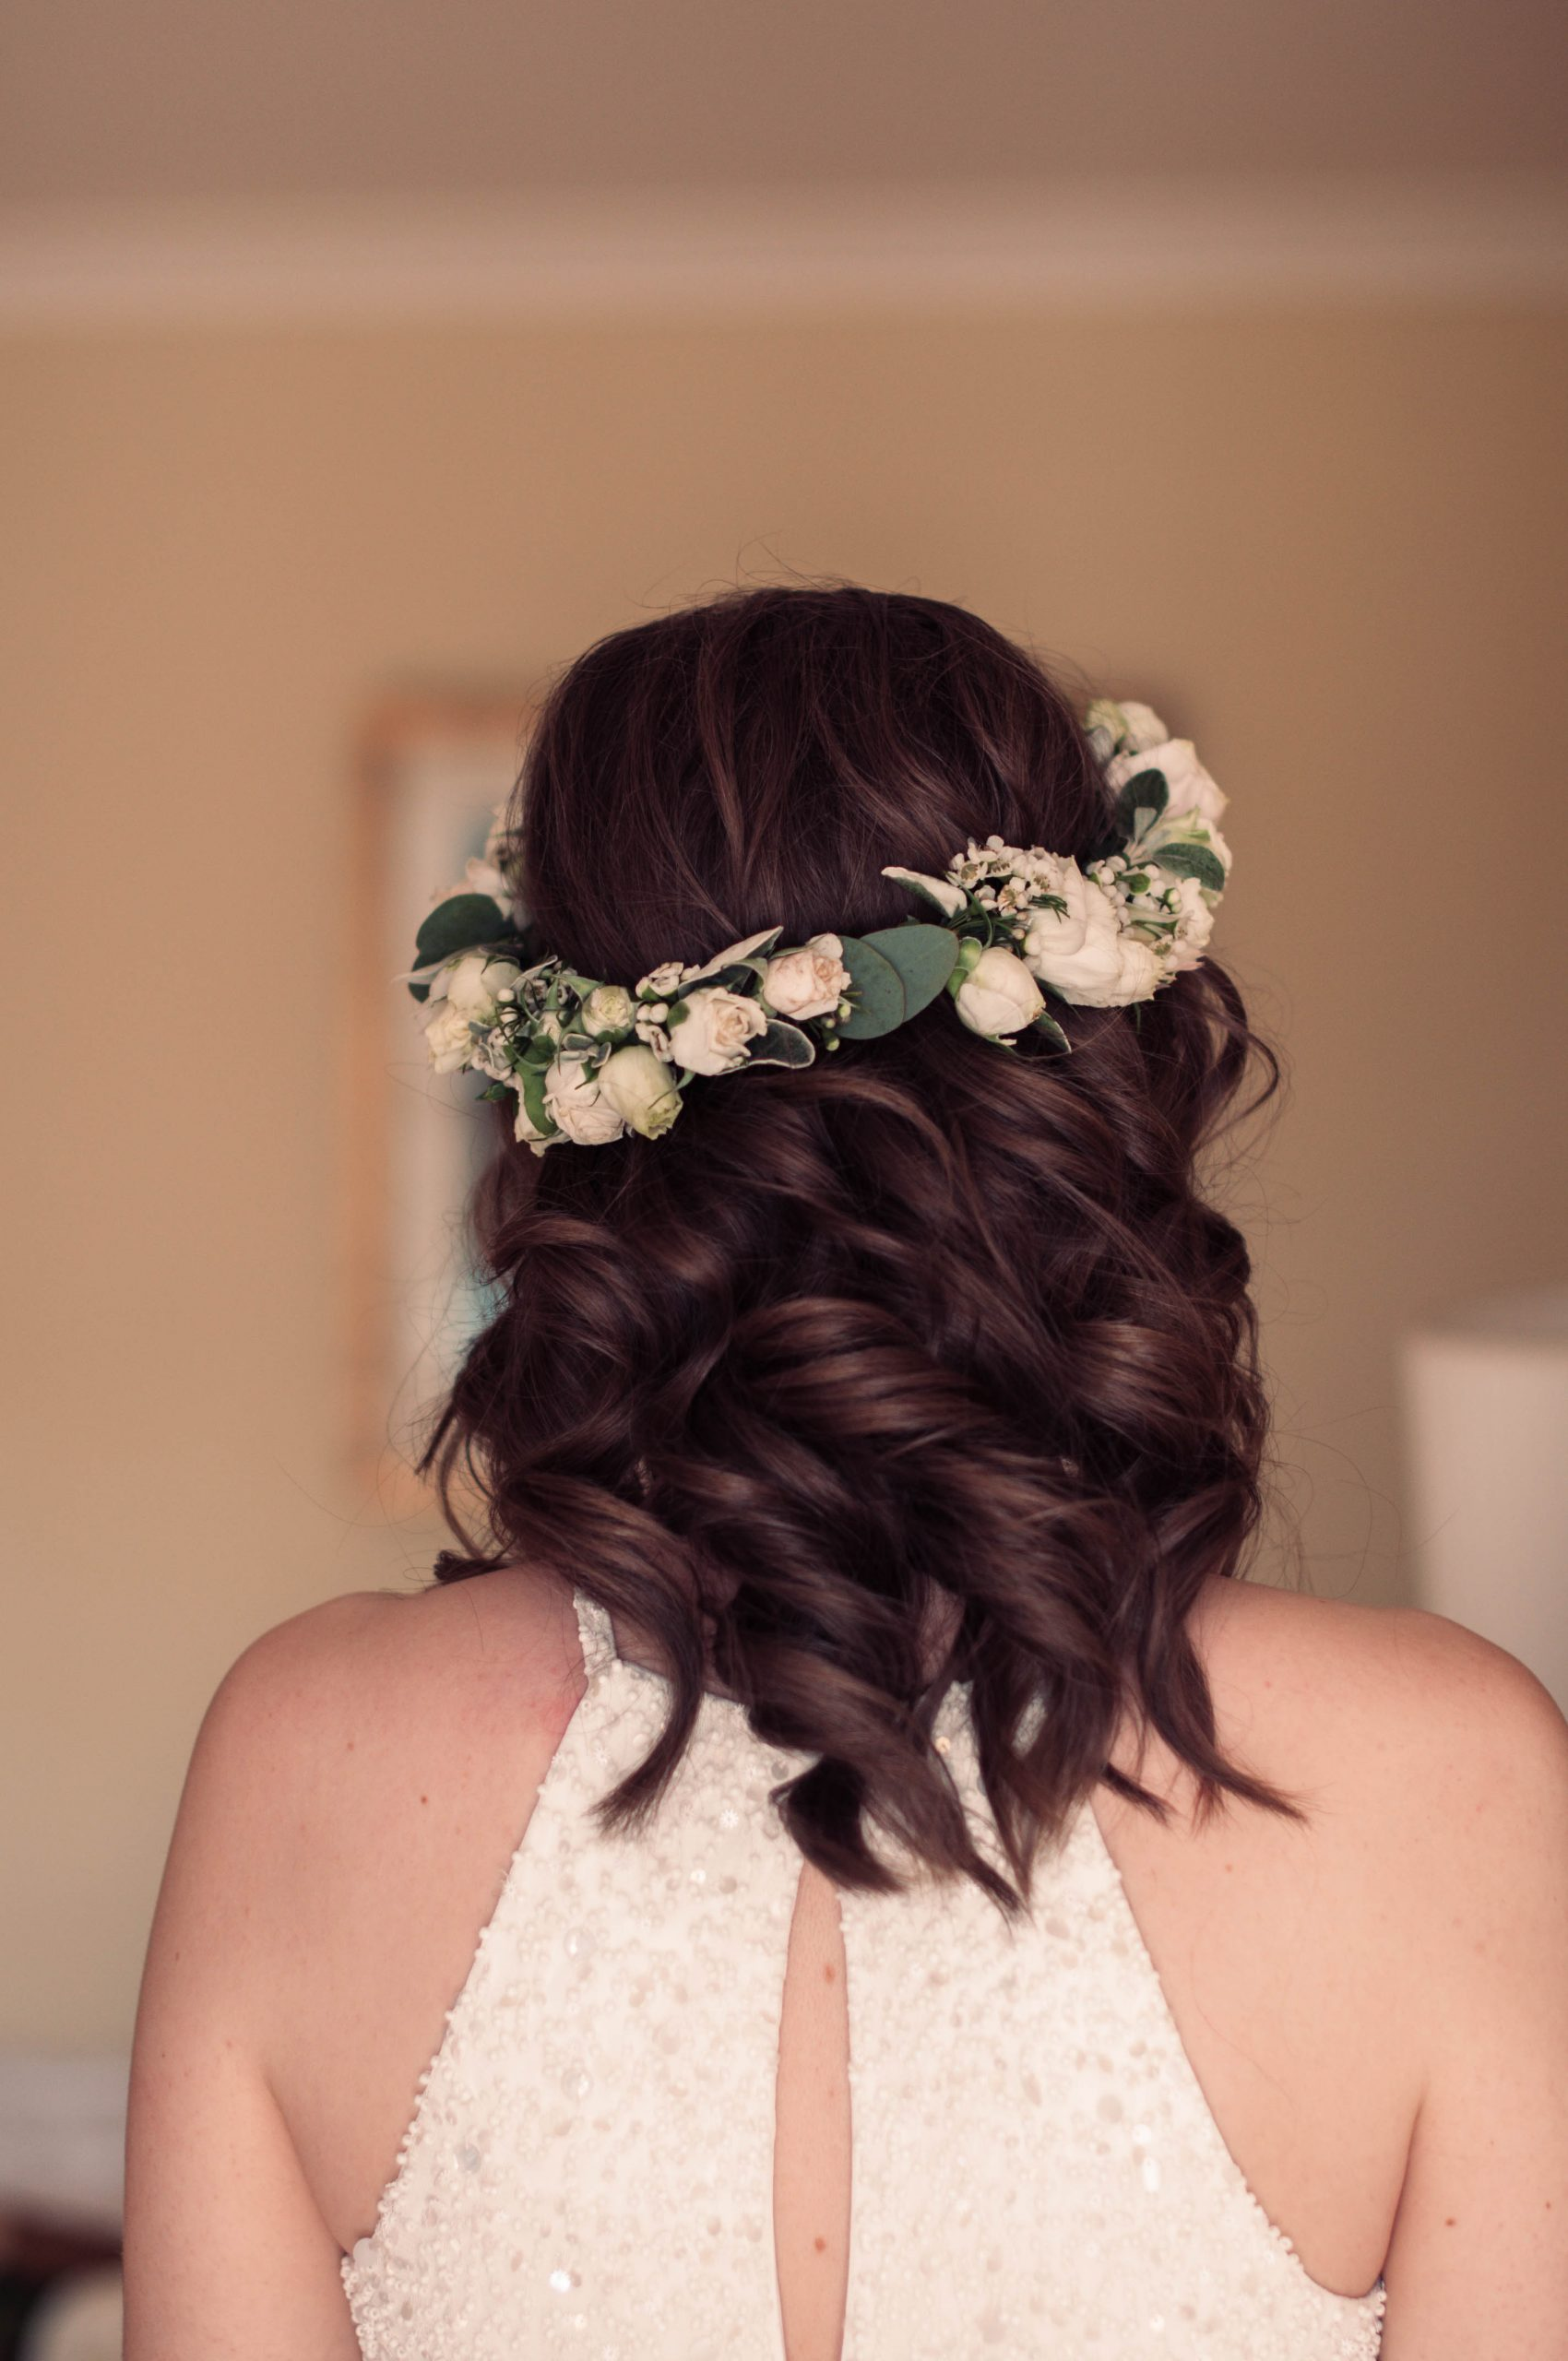 Delightful curls with a flower crown